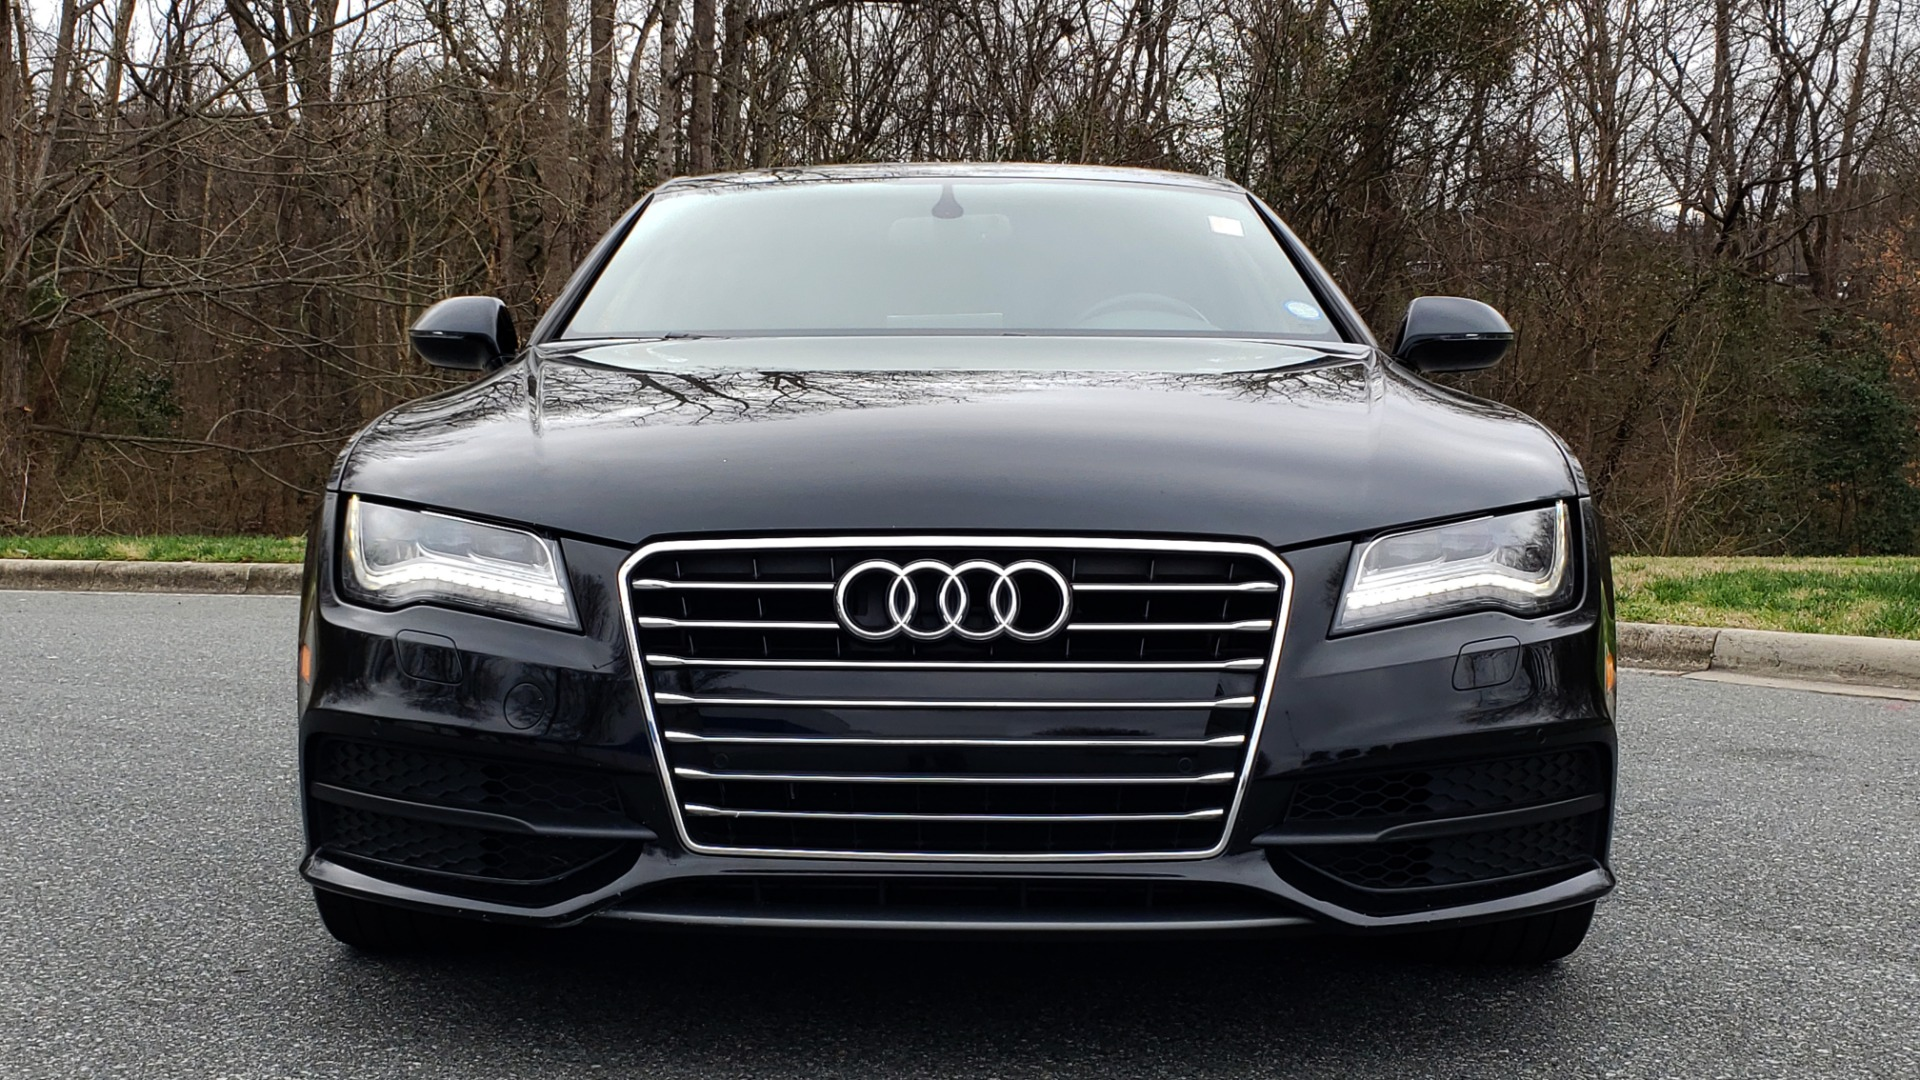 Used 2014 Audi A7 3.0 PRESTIGE / NAV / SUNROOF / BOSE / REARVIEW for sale Sold at Formula Imports in Charlotte NC 28227 25